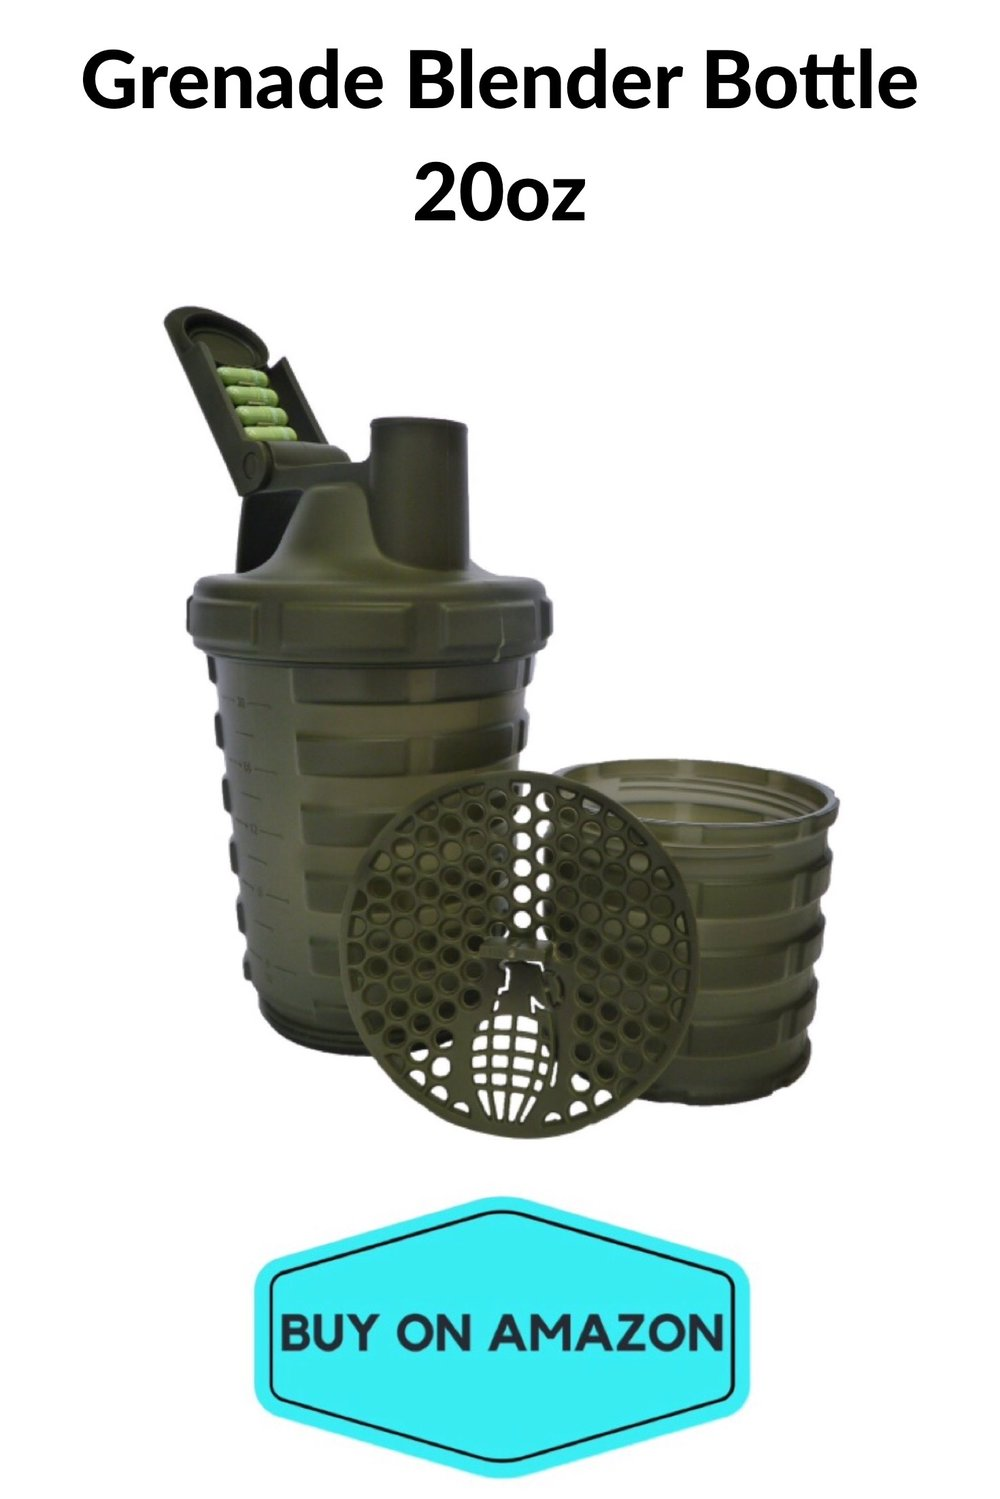 Grenade Blender Bottle